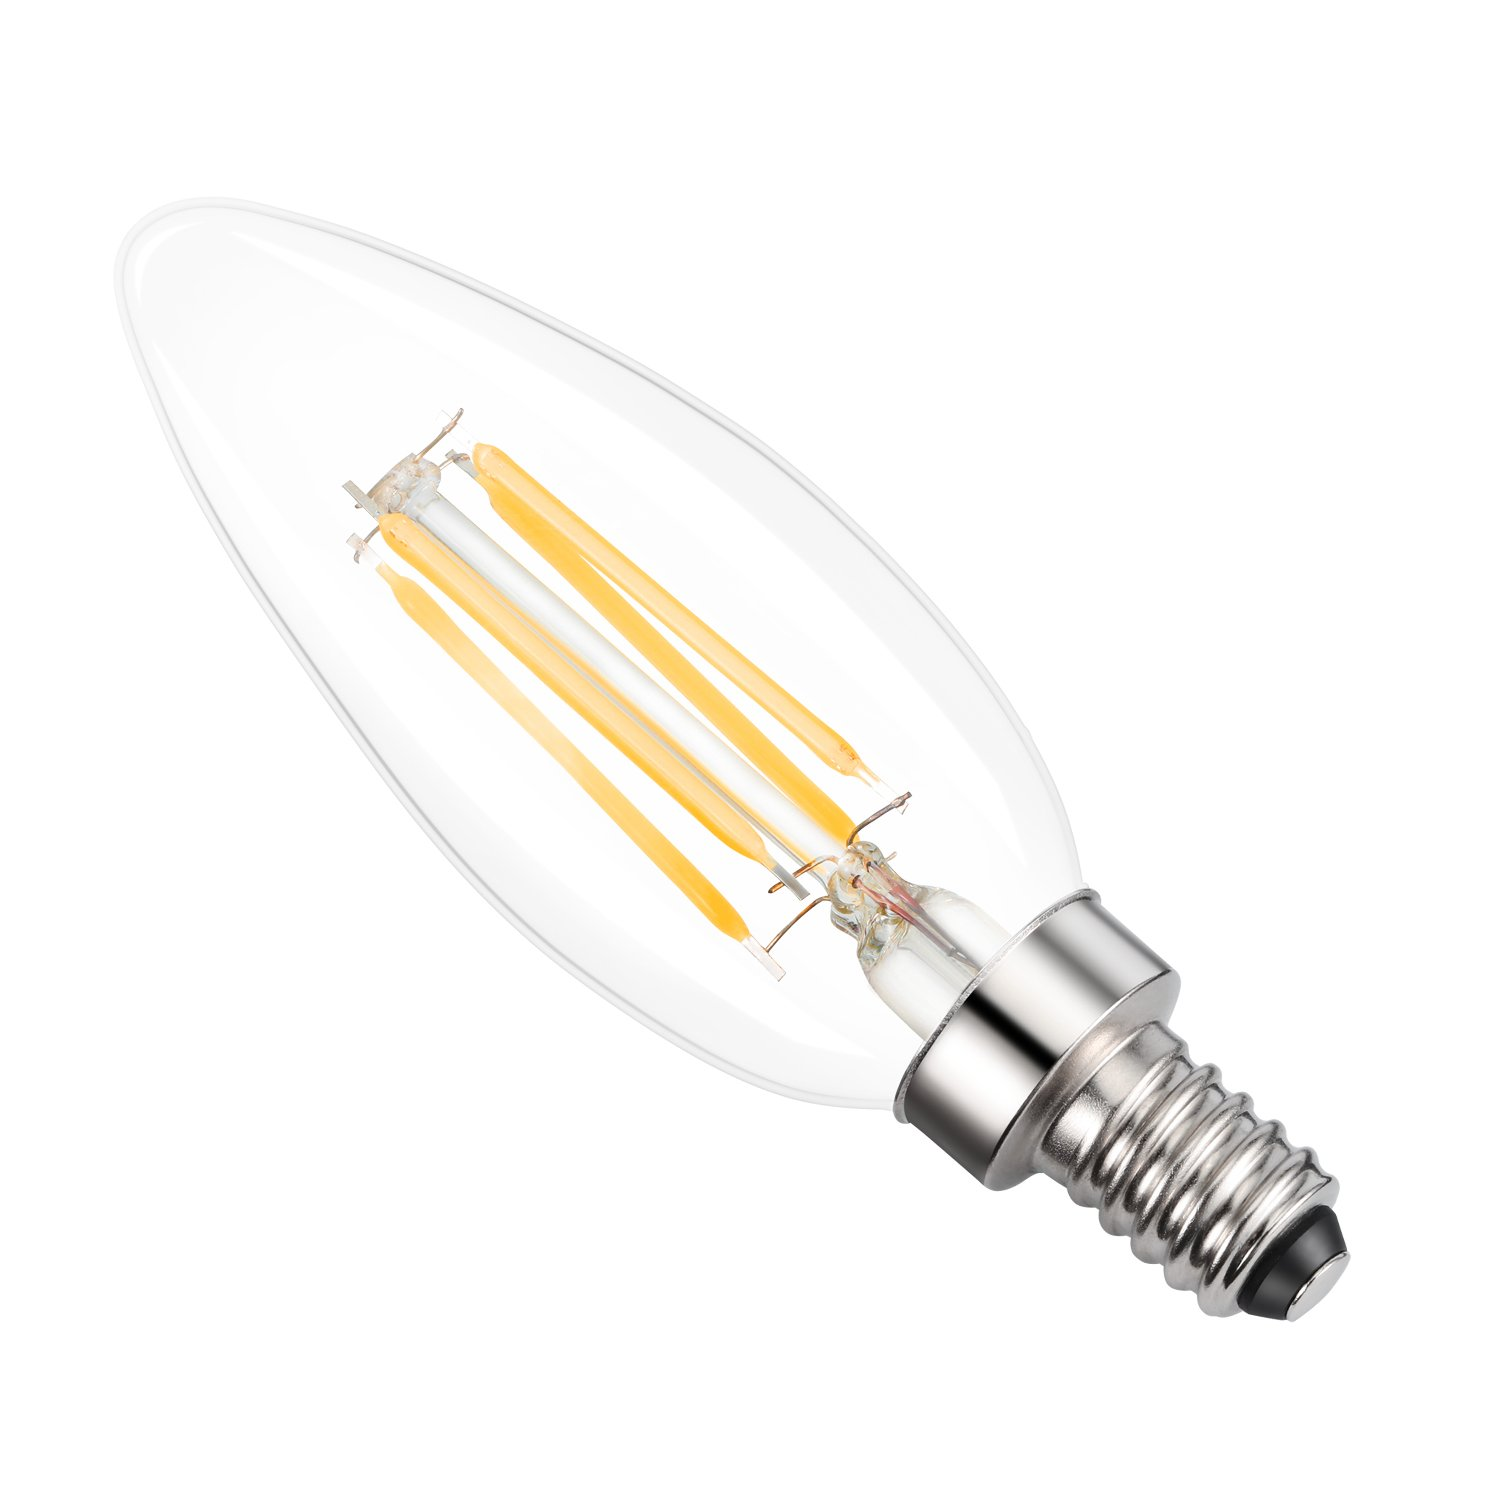 UL Listed Non-Dimmable 2700K Warm White Kohree E12 Edison Bulb LED Candelabra Bulb Chandelier Bulb C35 Candle Light Bulb 40W Equivalent Pack of 12